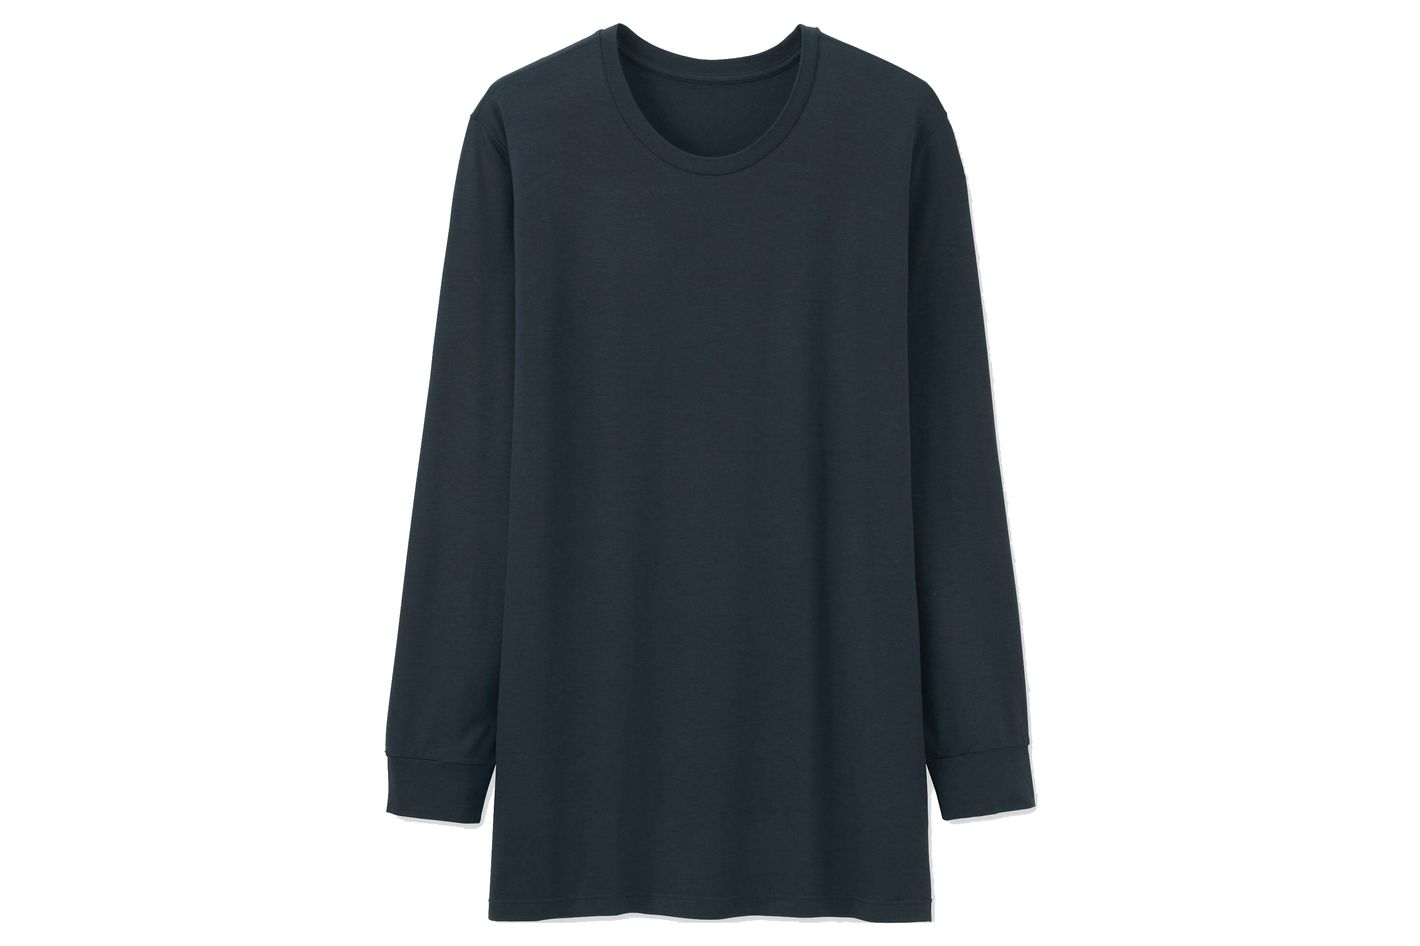 Uniqlo Men's Heattech Crewneck T-shirt